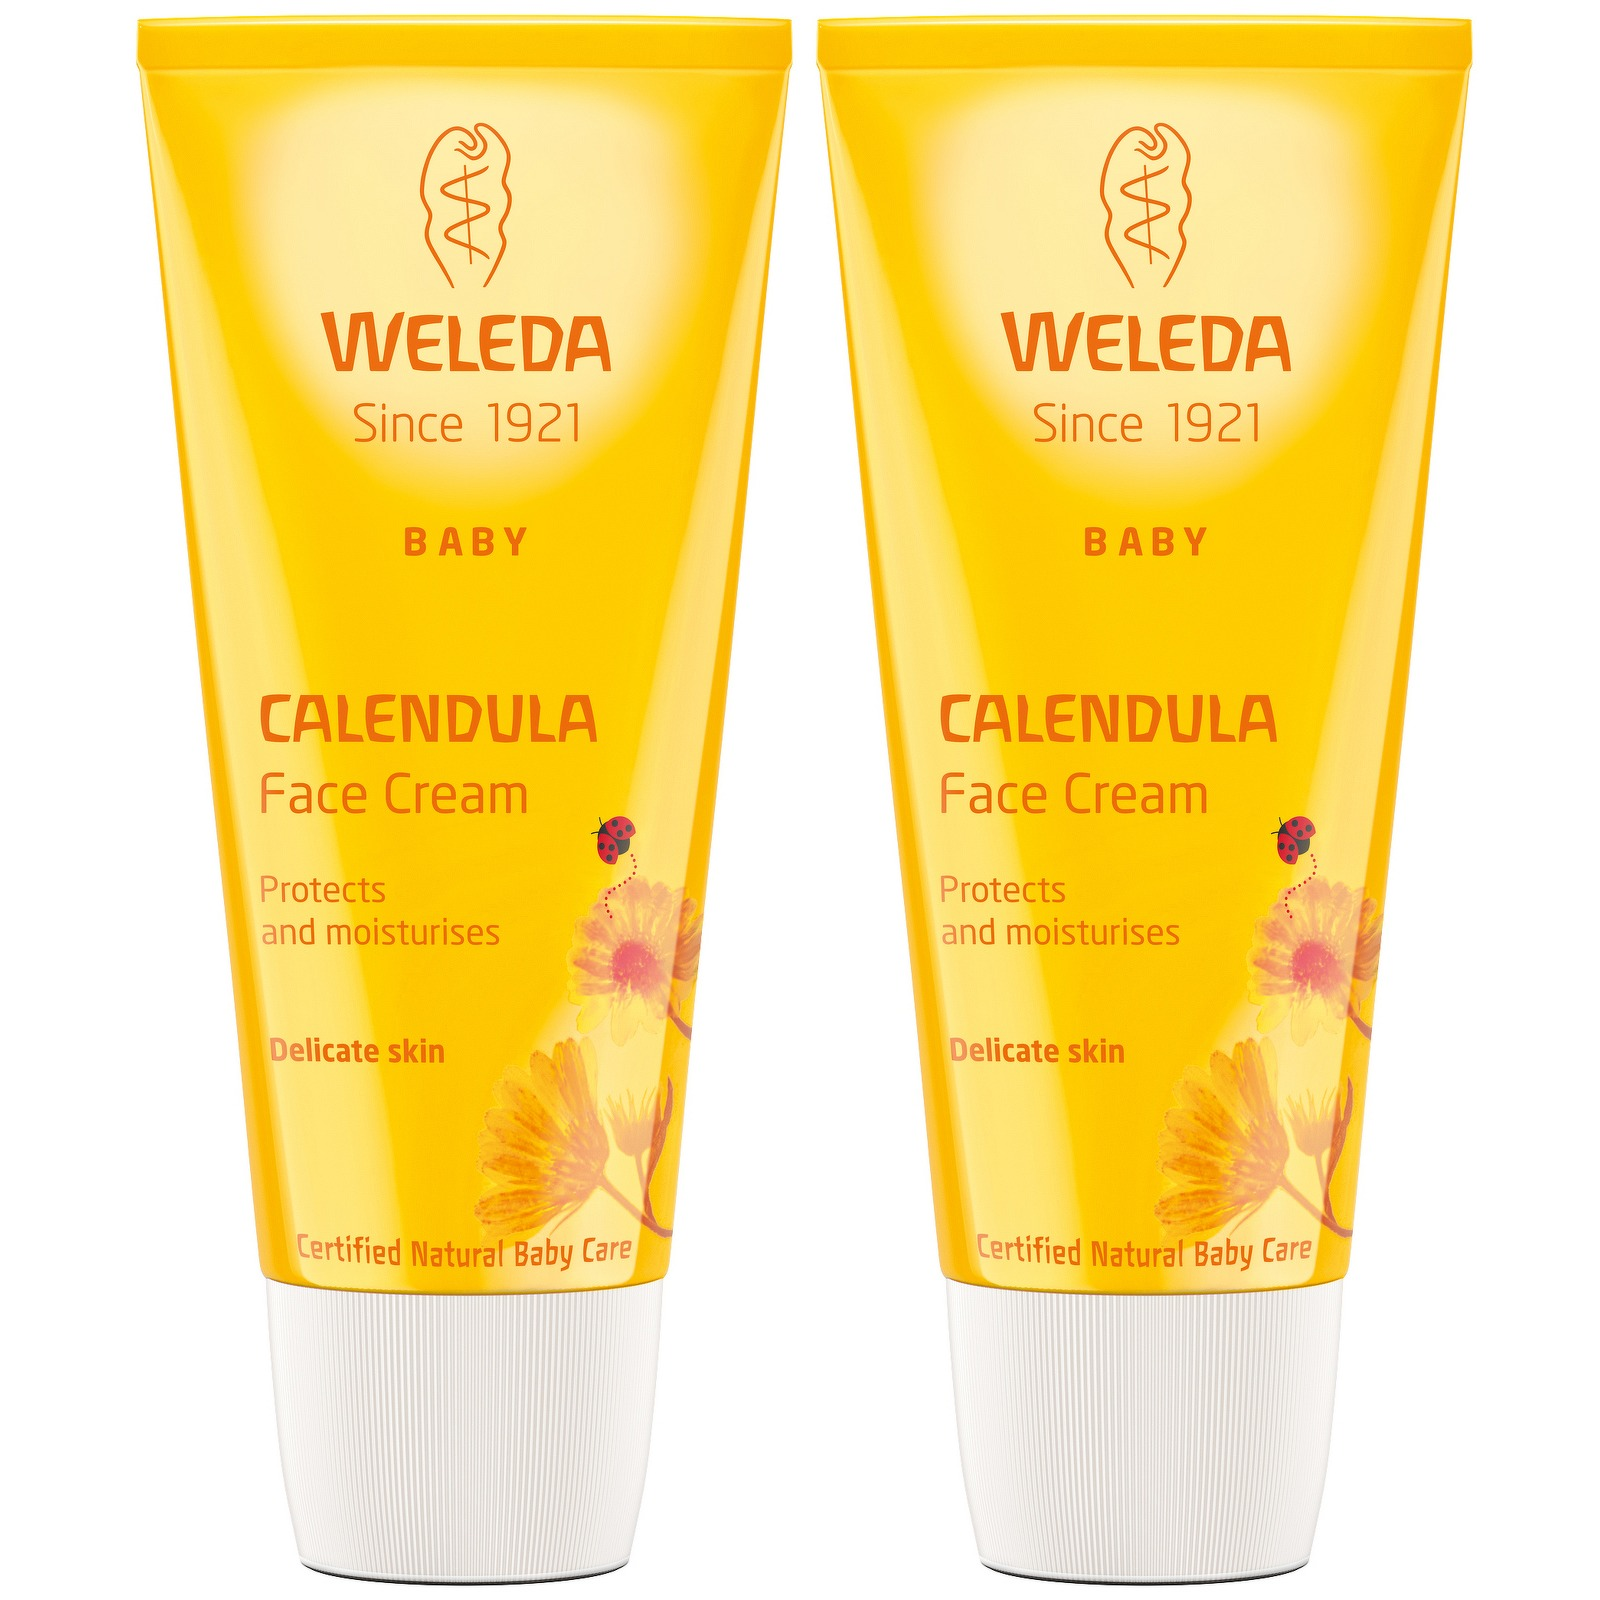 Weleda Mother & Child Calendula Face Cream 50ml x 2